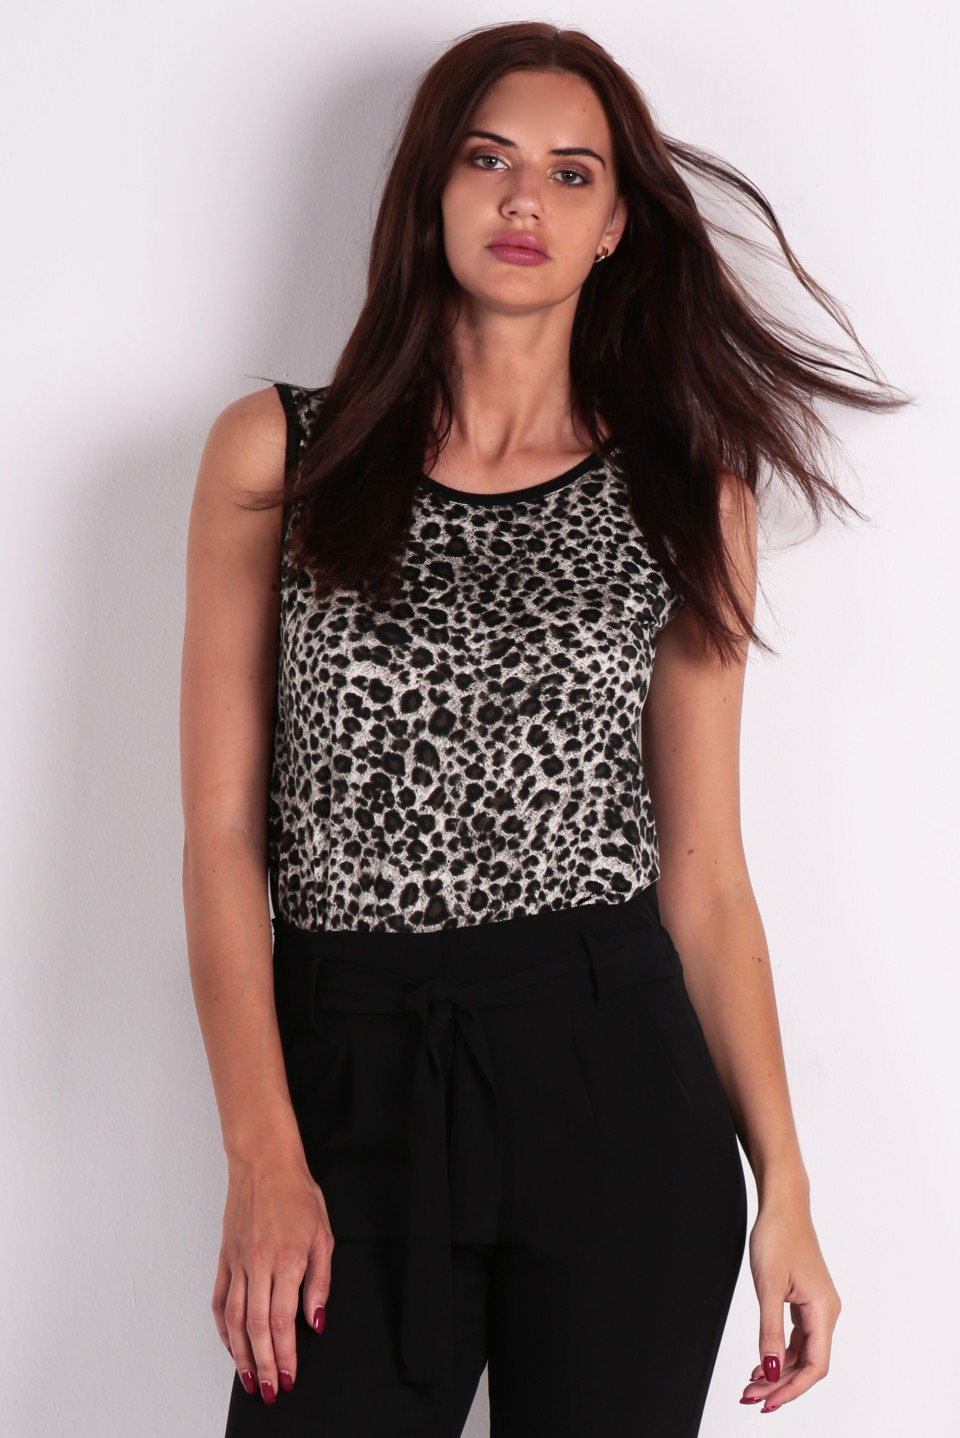 Camiseta estampado leopardo 1